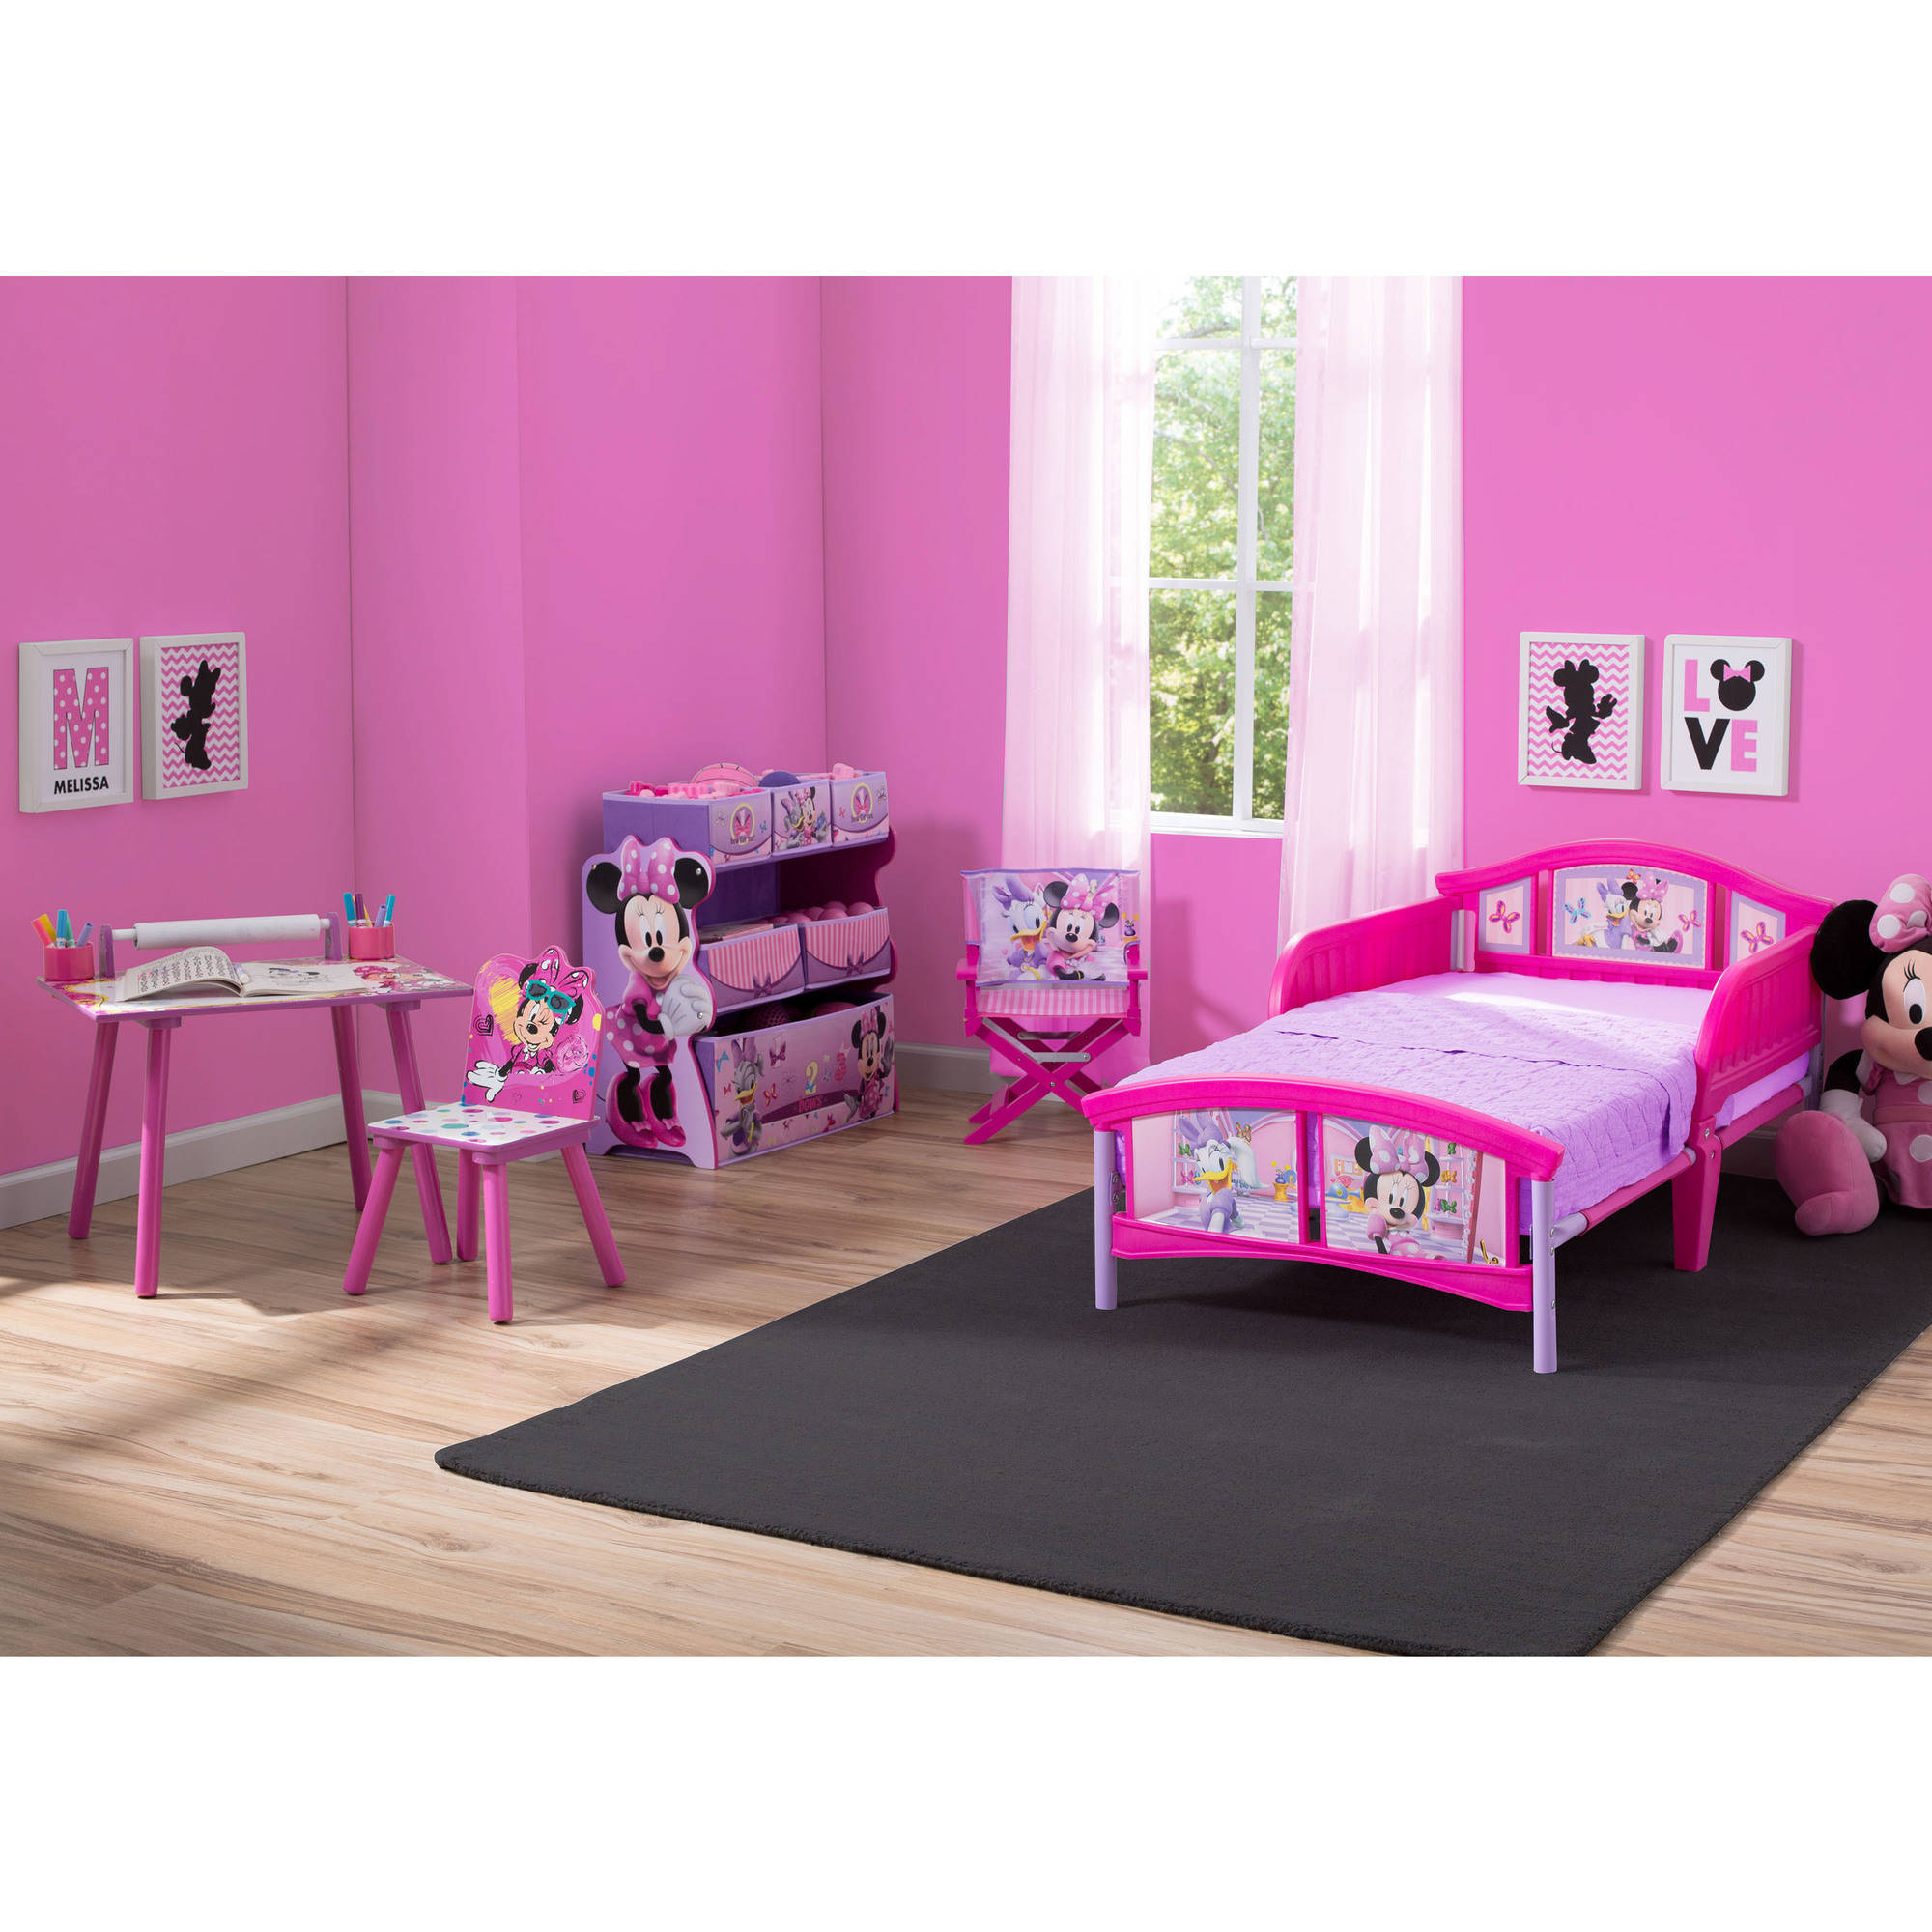 sc 1 st  Walmart & Disney Minnie Mouse Room-in-a-Box with Bonus Chair - Walmart.com